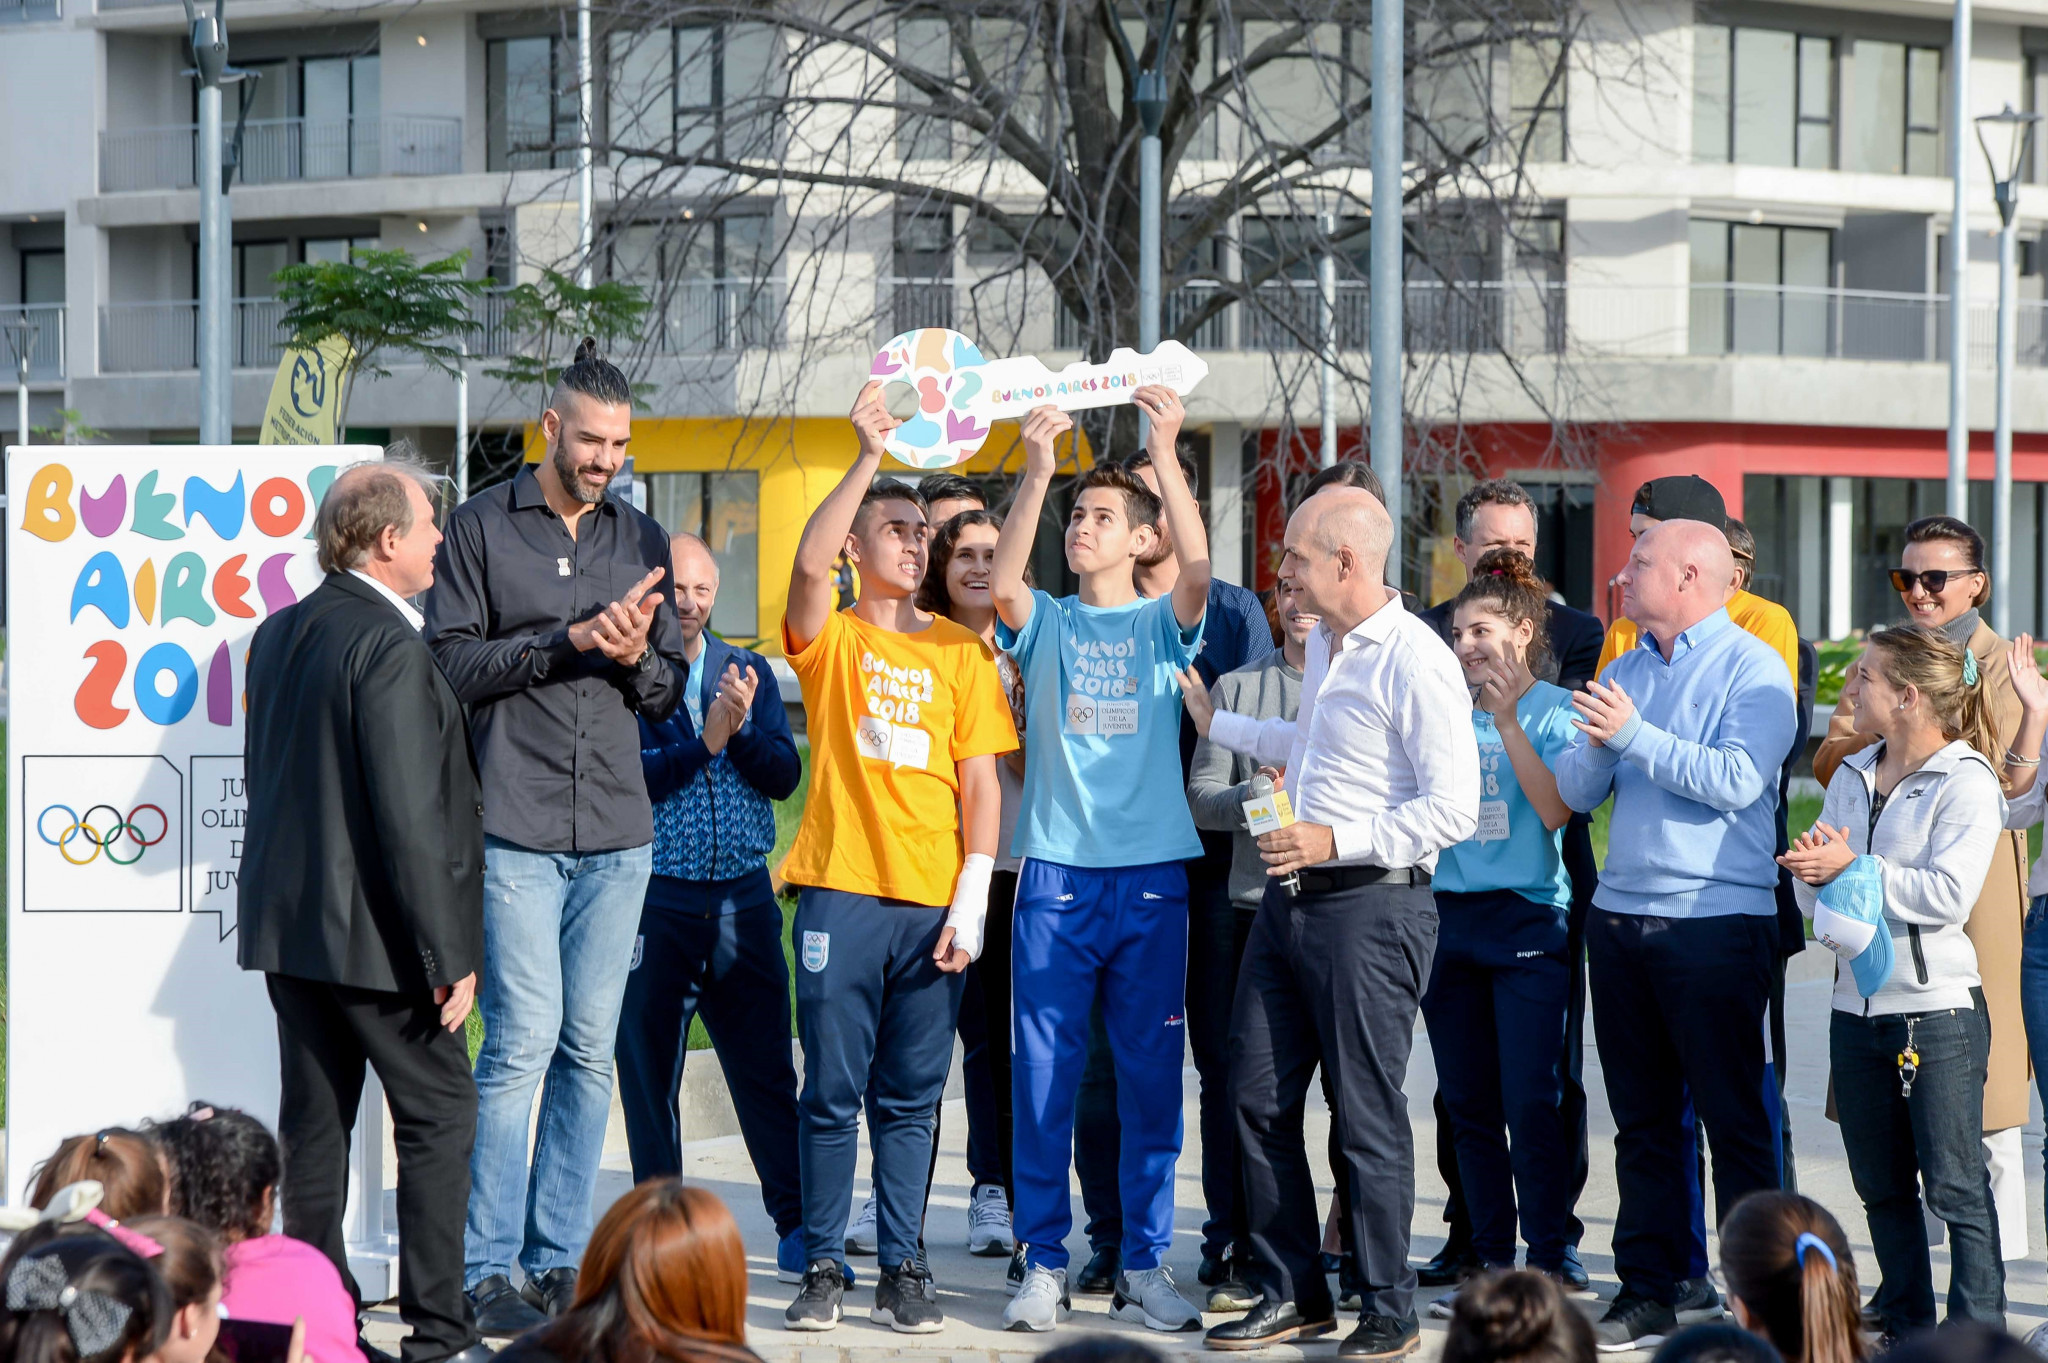 Athletes' Village formally handed over to Buenos Aires 2018 in special ceremony